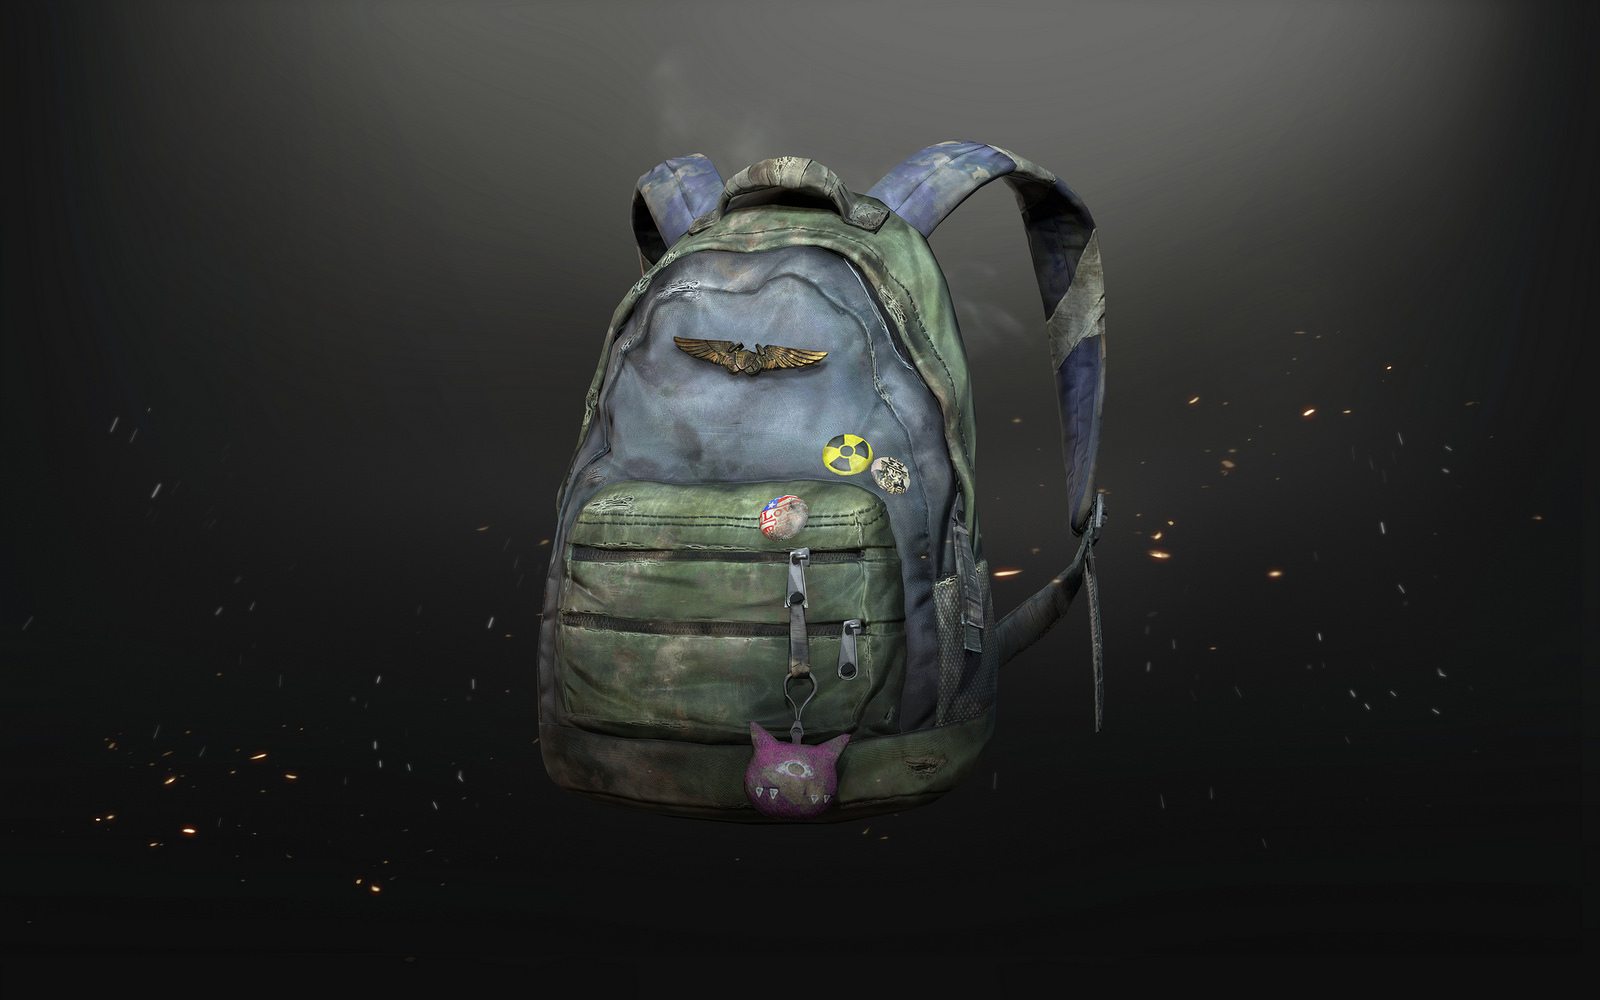 Ellie backpack PUBG